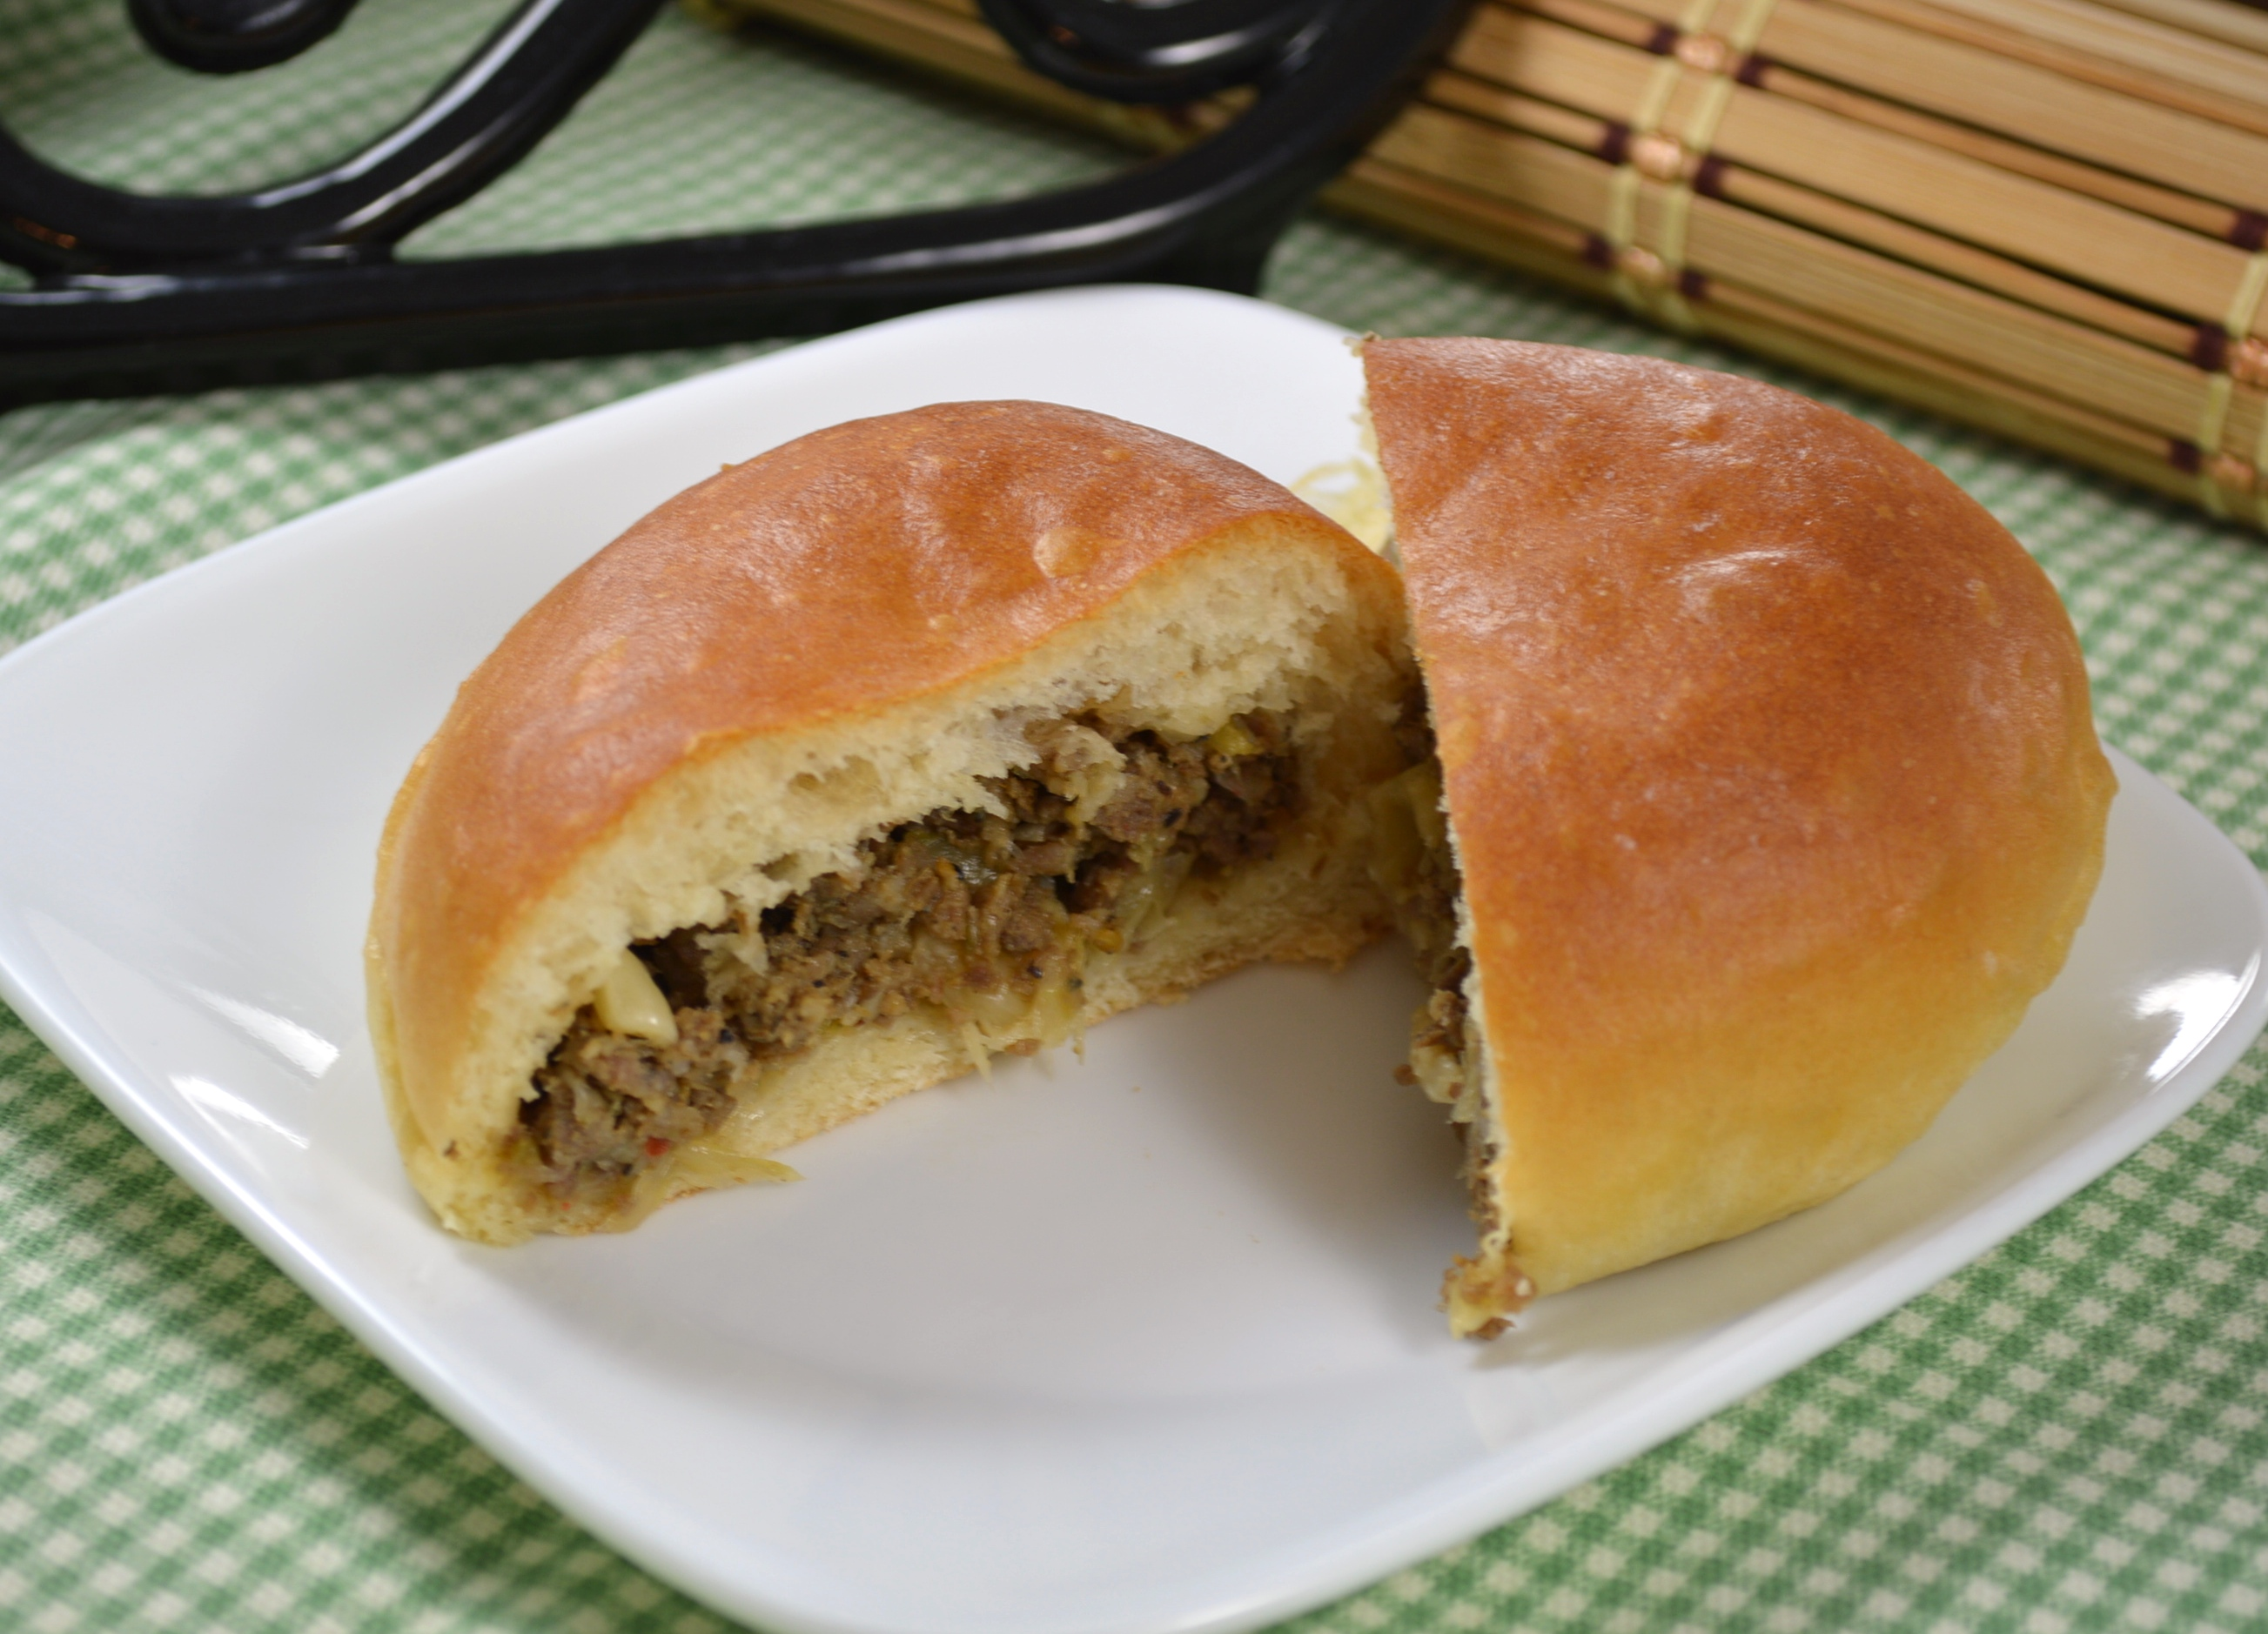 """Sweet dinner rolls are stuffed with a ground beef, onion, and cabbage mixture. """"These turned out really good,"""" says MYSTY1. """"They taste like small burgers. The bread was so soft with a sweetness to it. I could have eaten the bread by itself."""""""